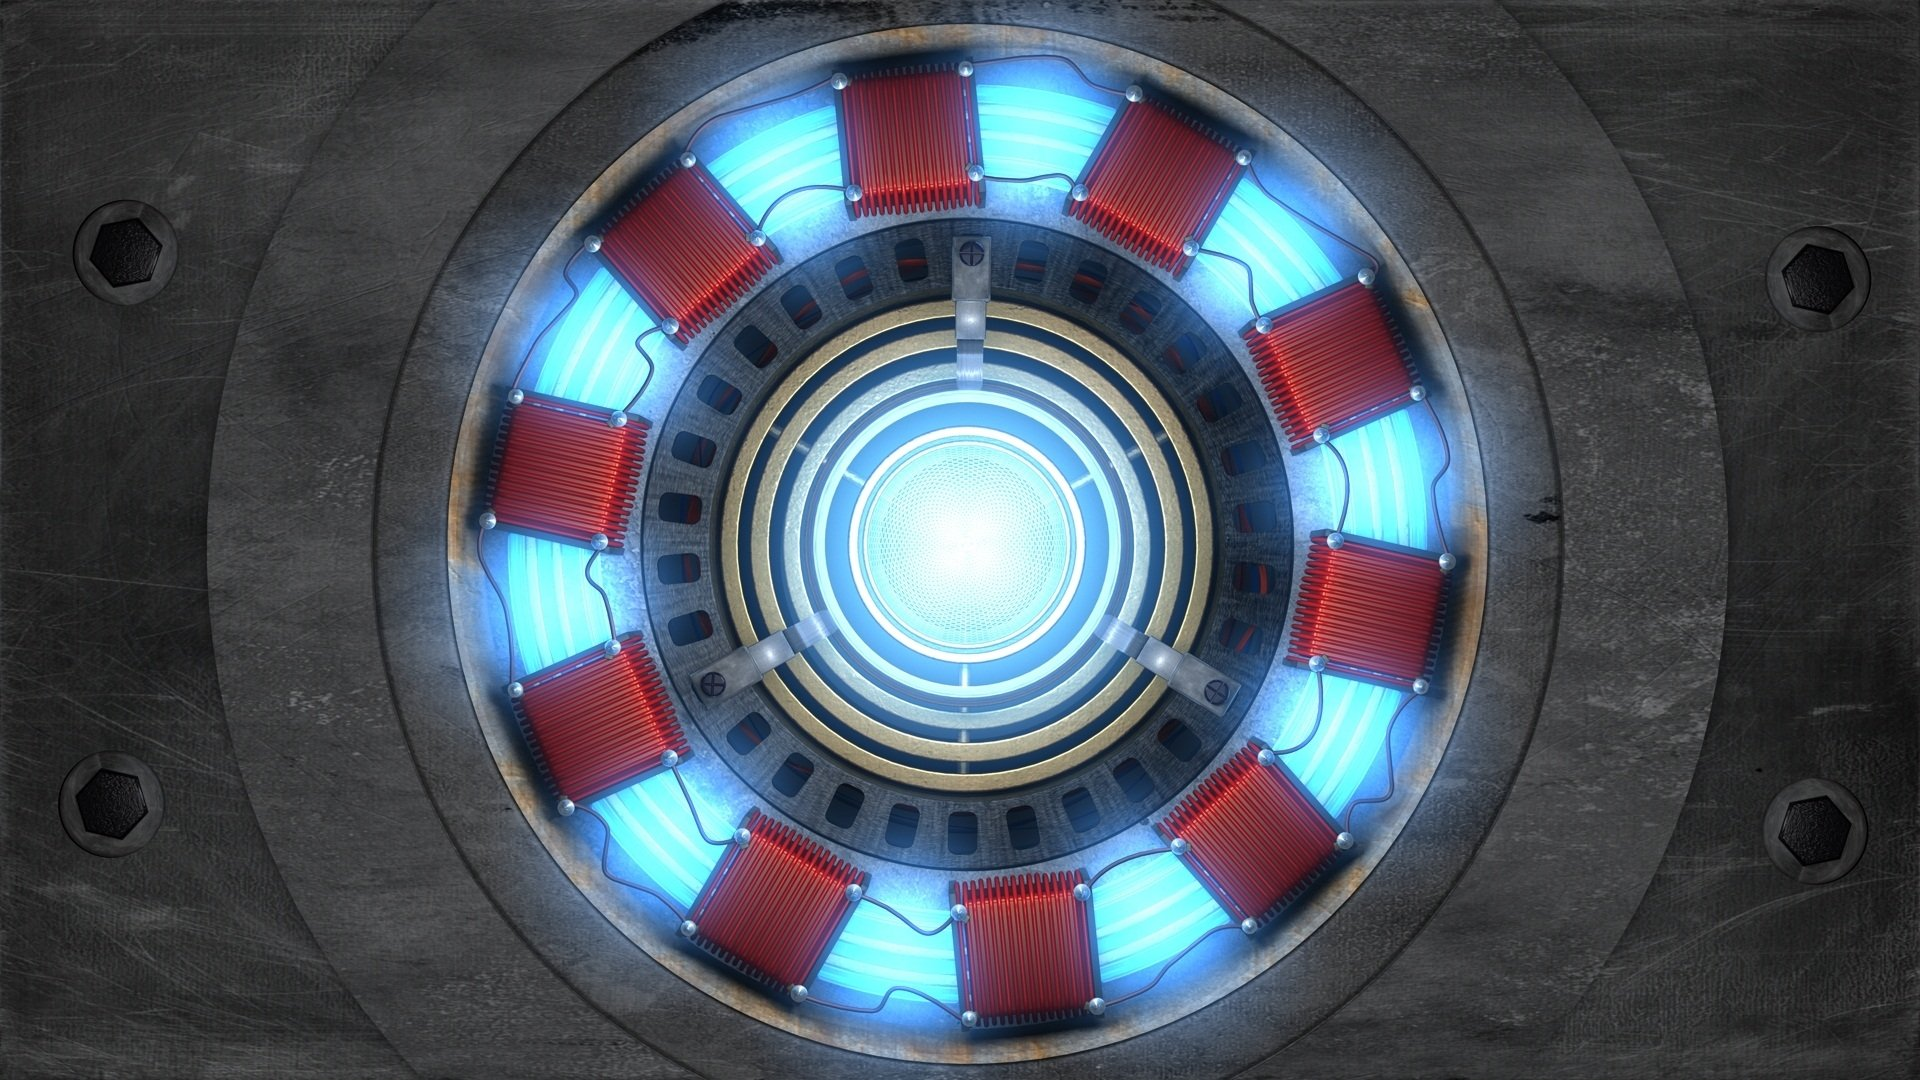 Iron man 39 s arc reactor powered electromagnet chest piece - Iron man heart wallpaper ...